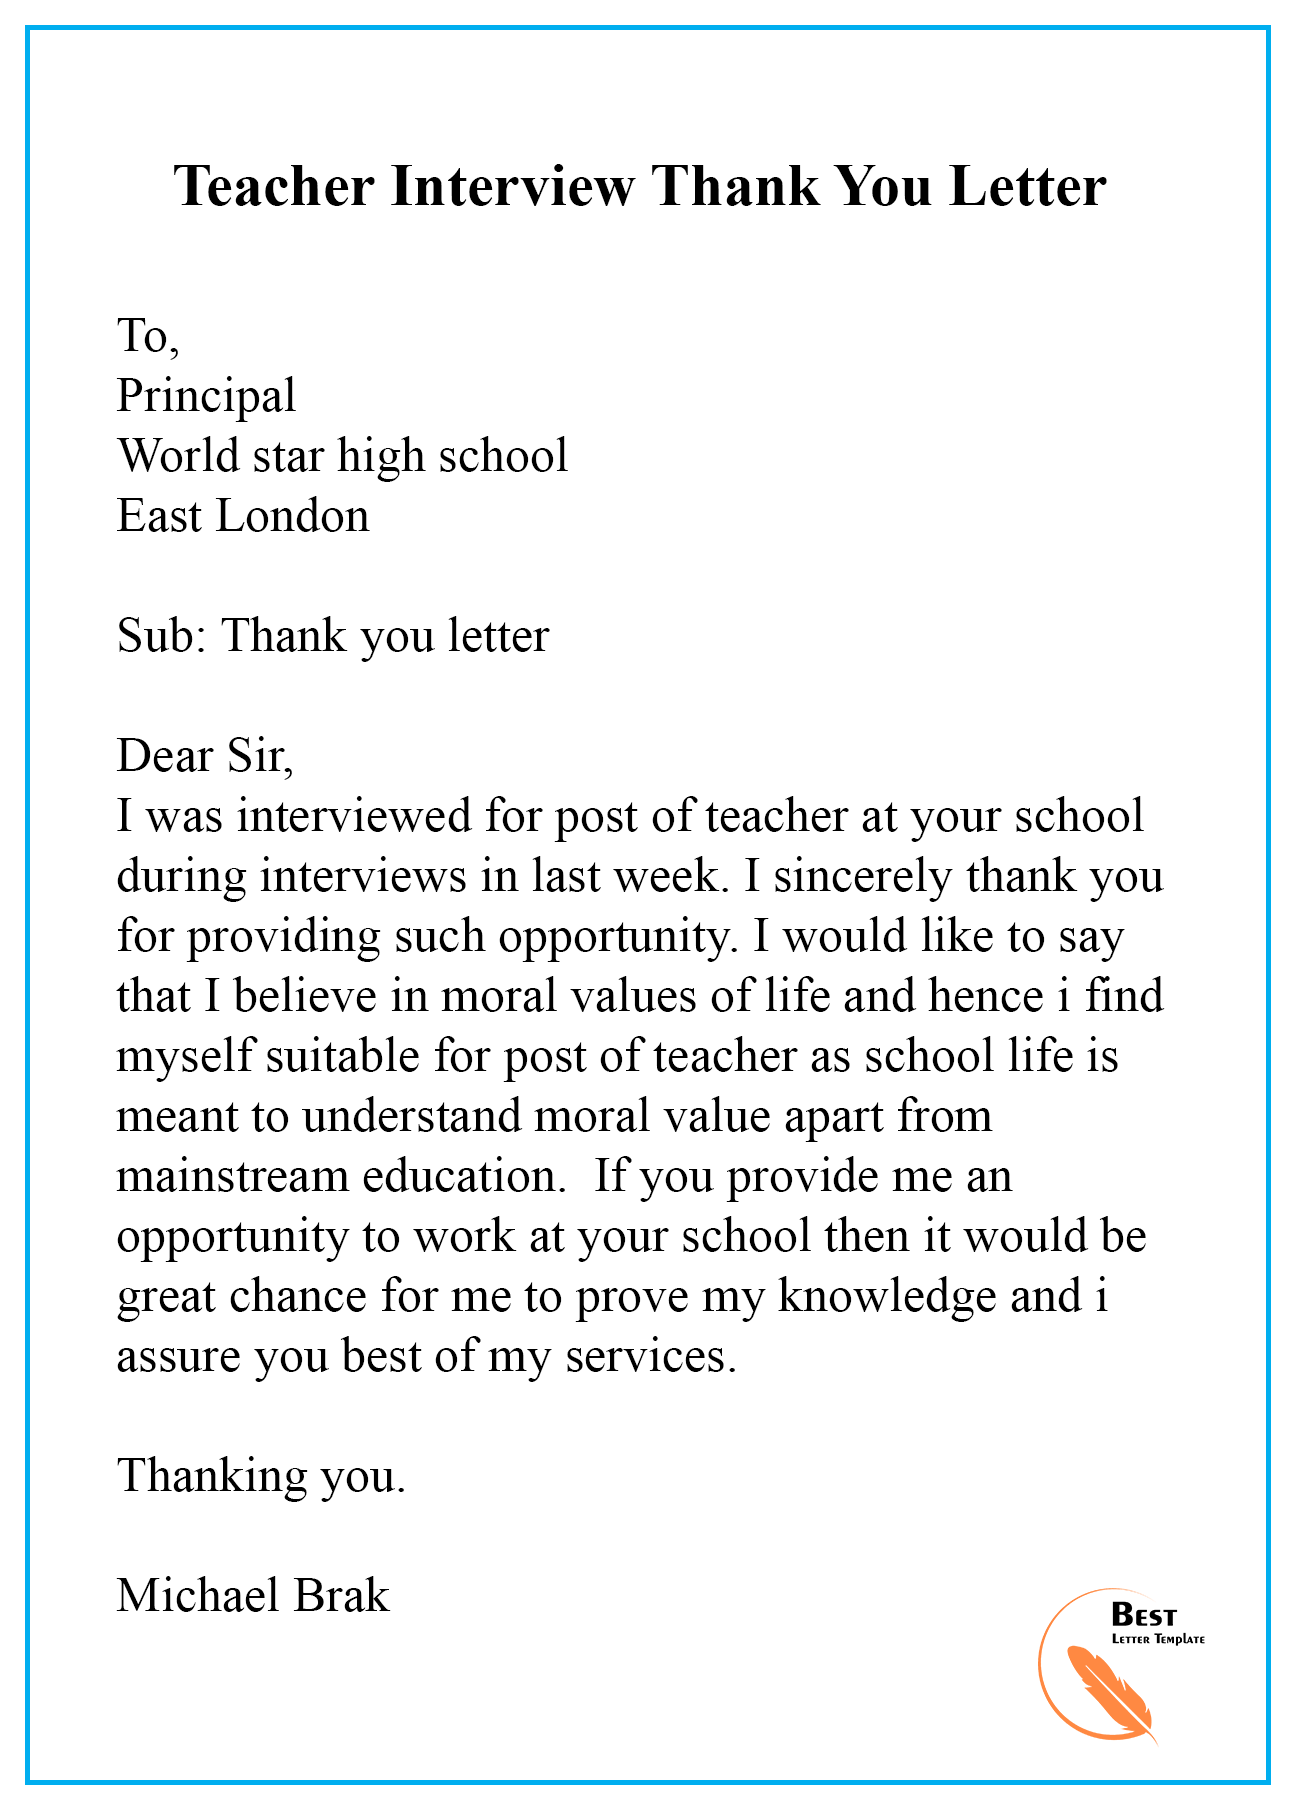 Thank You Letter Template After Interview from bestlettertemplate.com